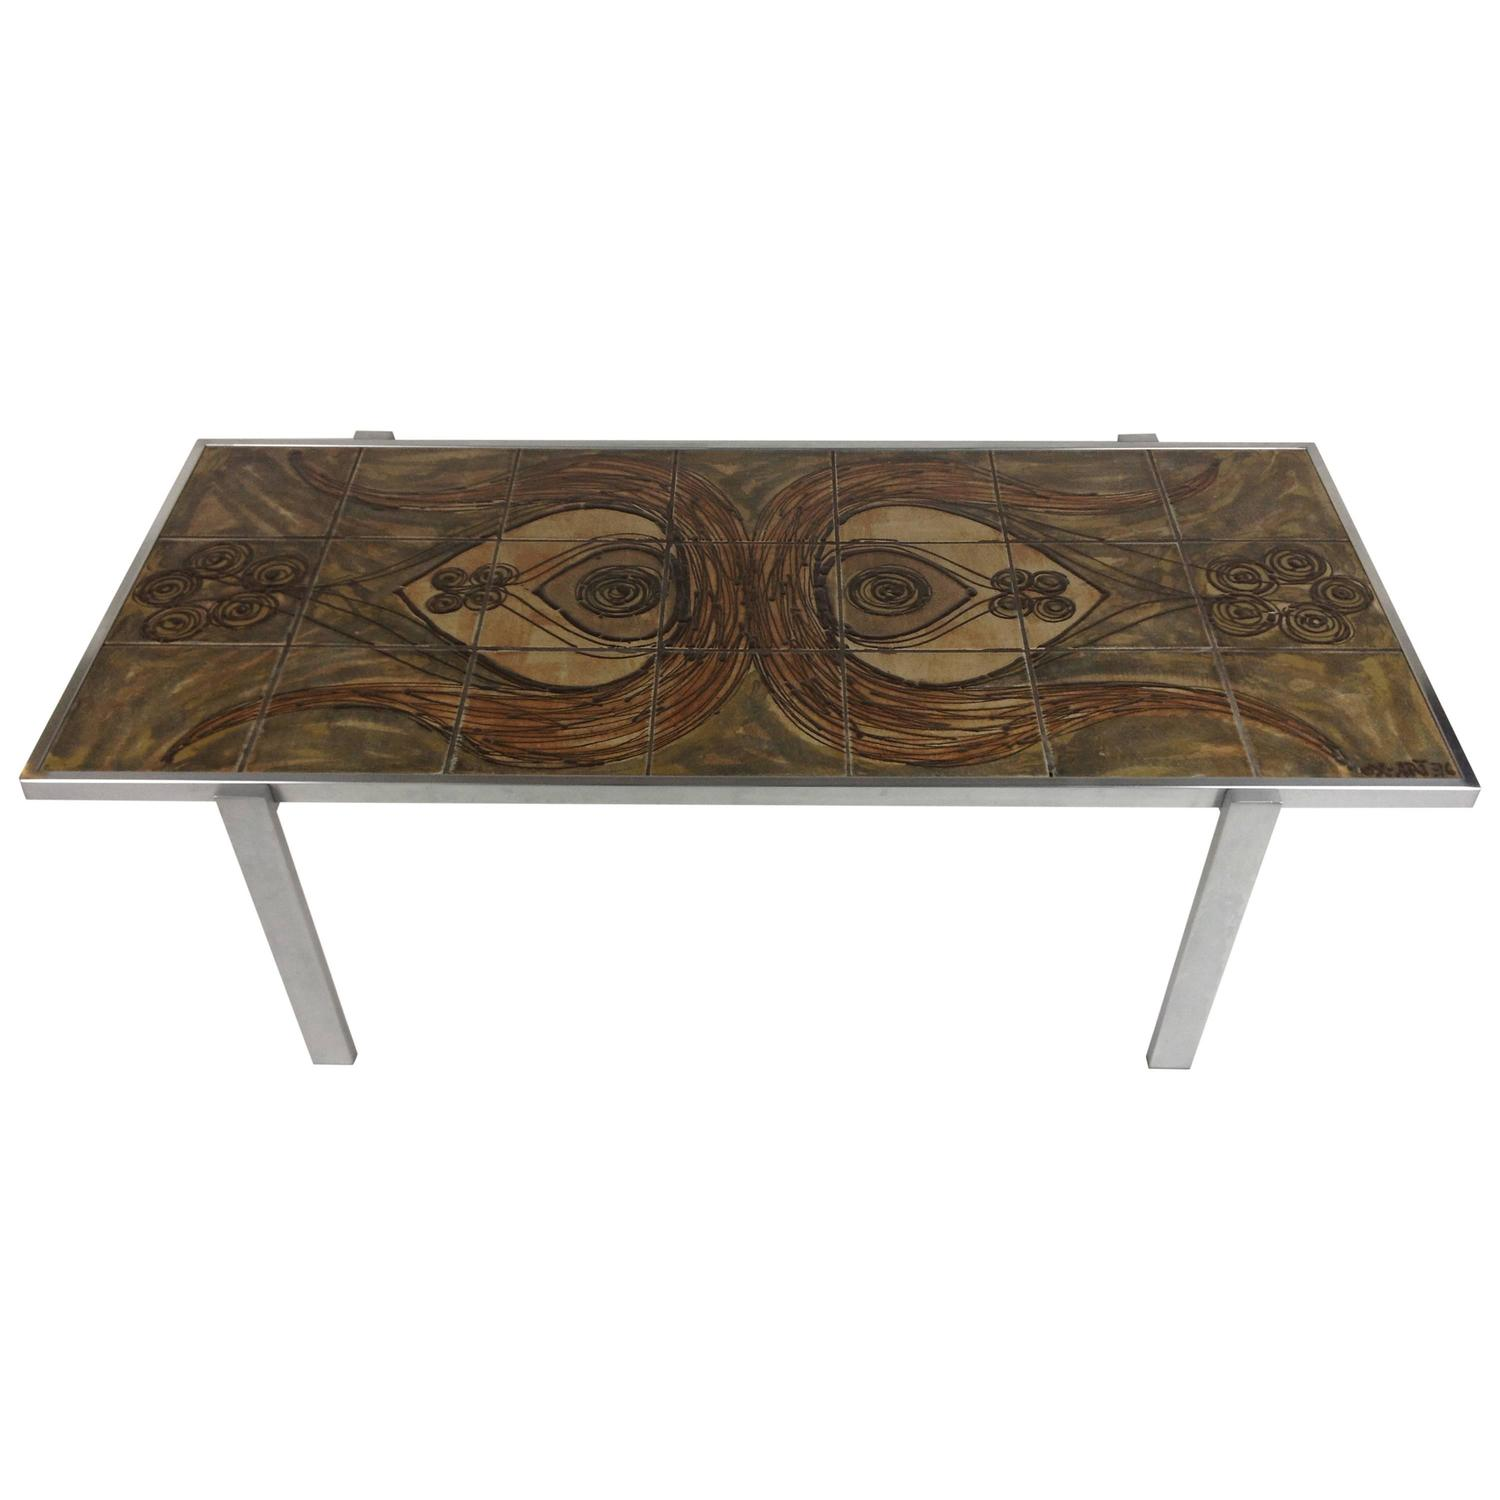 Incredible Rare Danish Modern Ox Art Tile and Metal Coffee Table